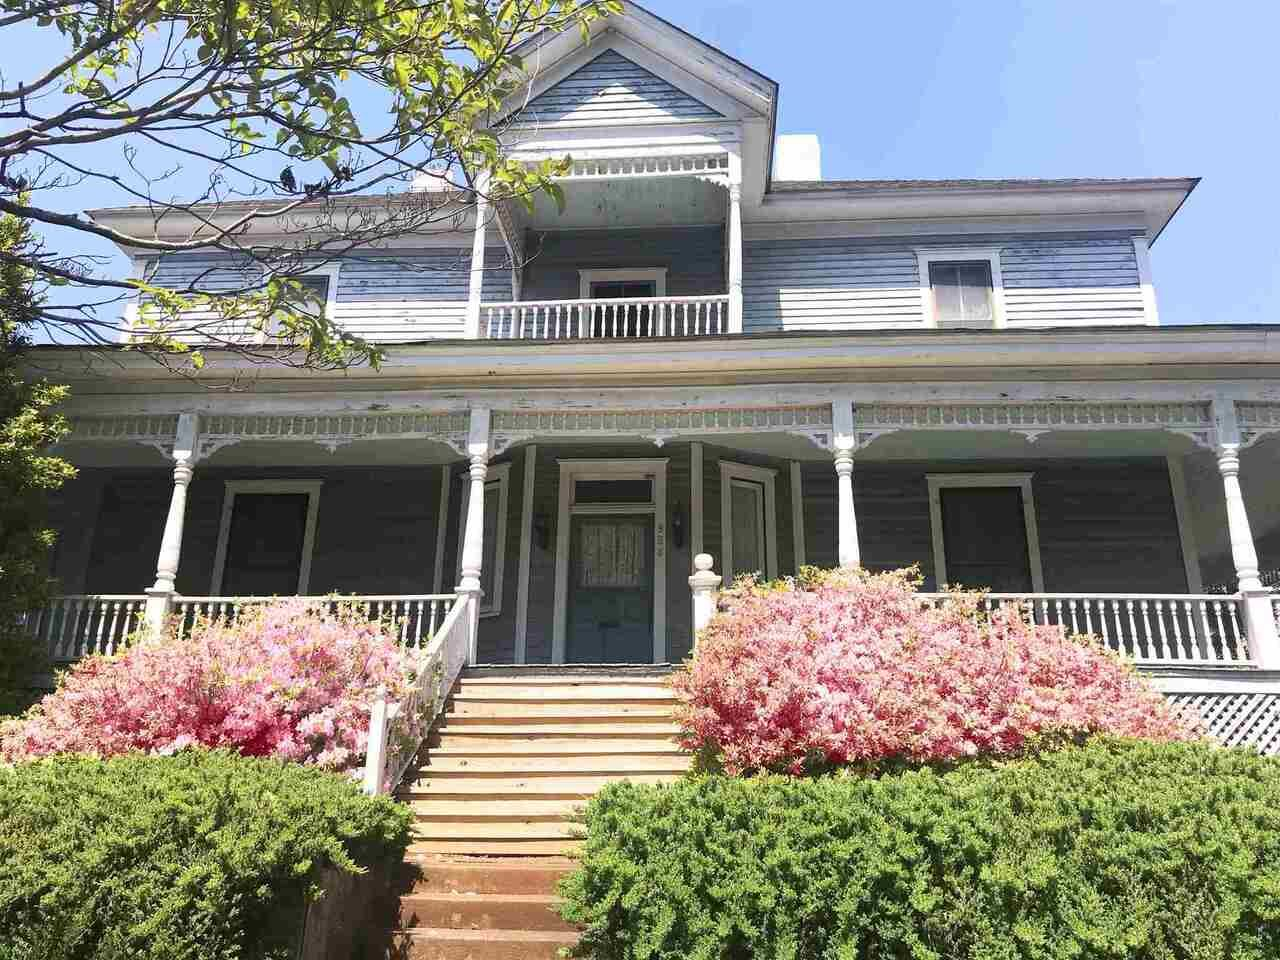 388 W Washington St, Monticello, GA 31064 - MLS#: 8966697